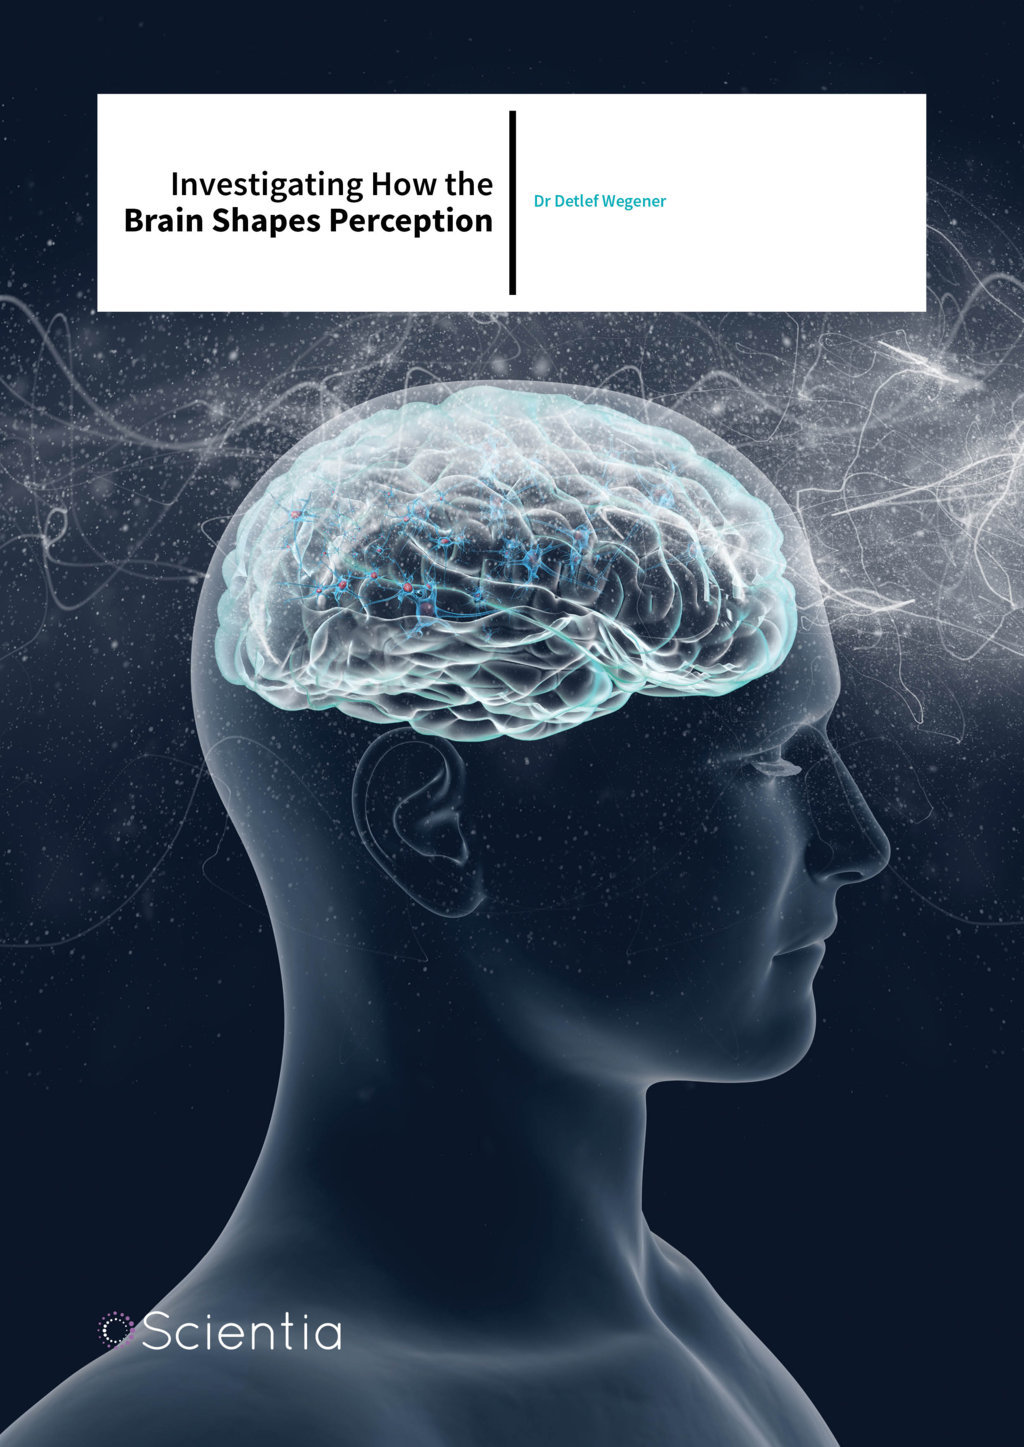 Dr Detlef Wegener – Investigating How the Brain Shapes Perception